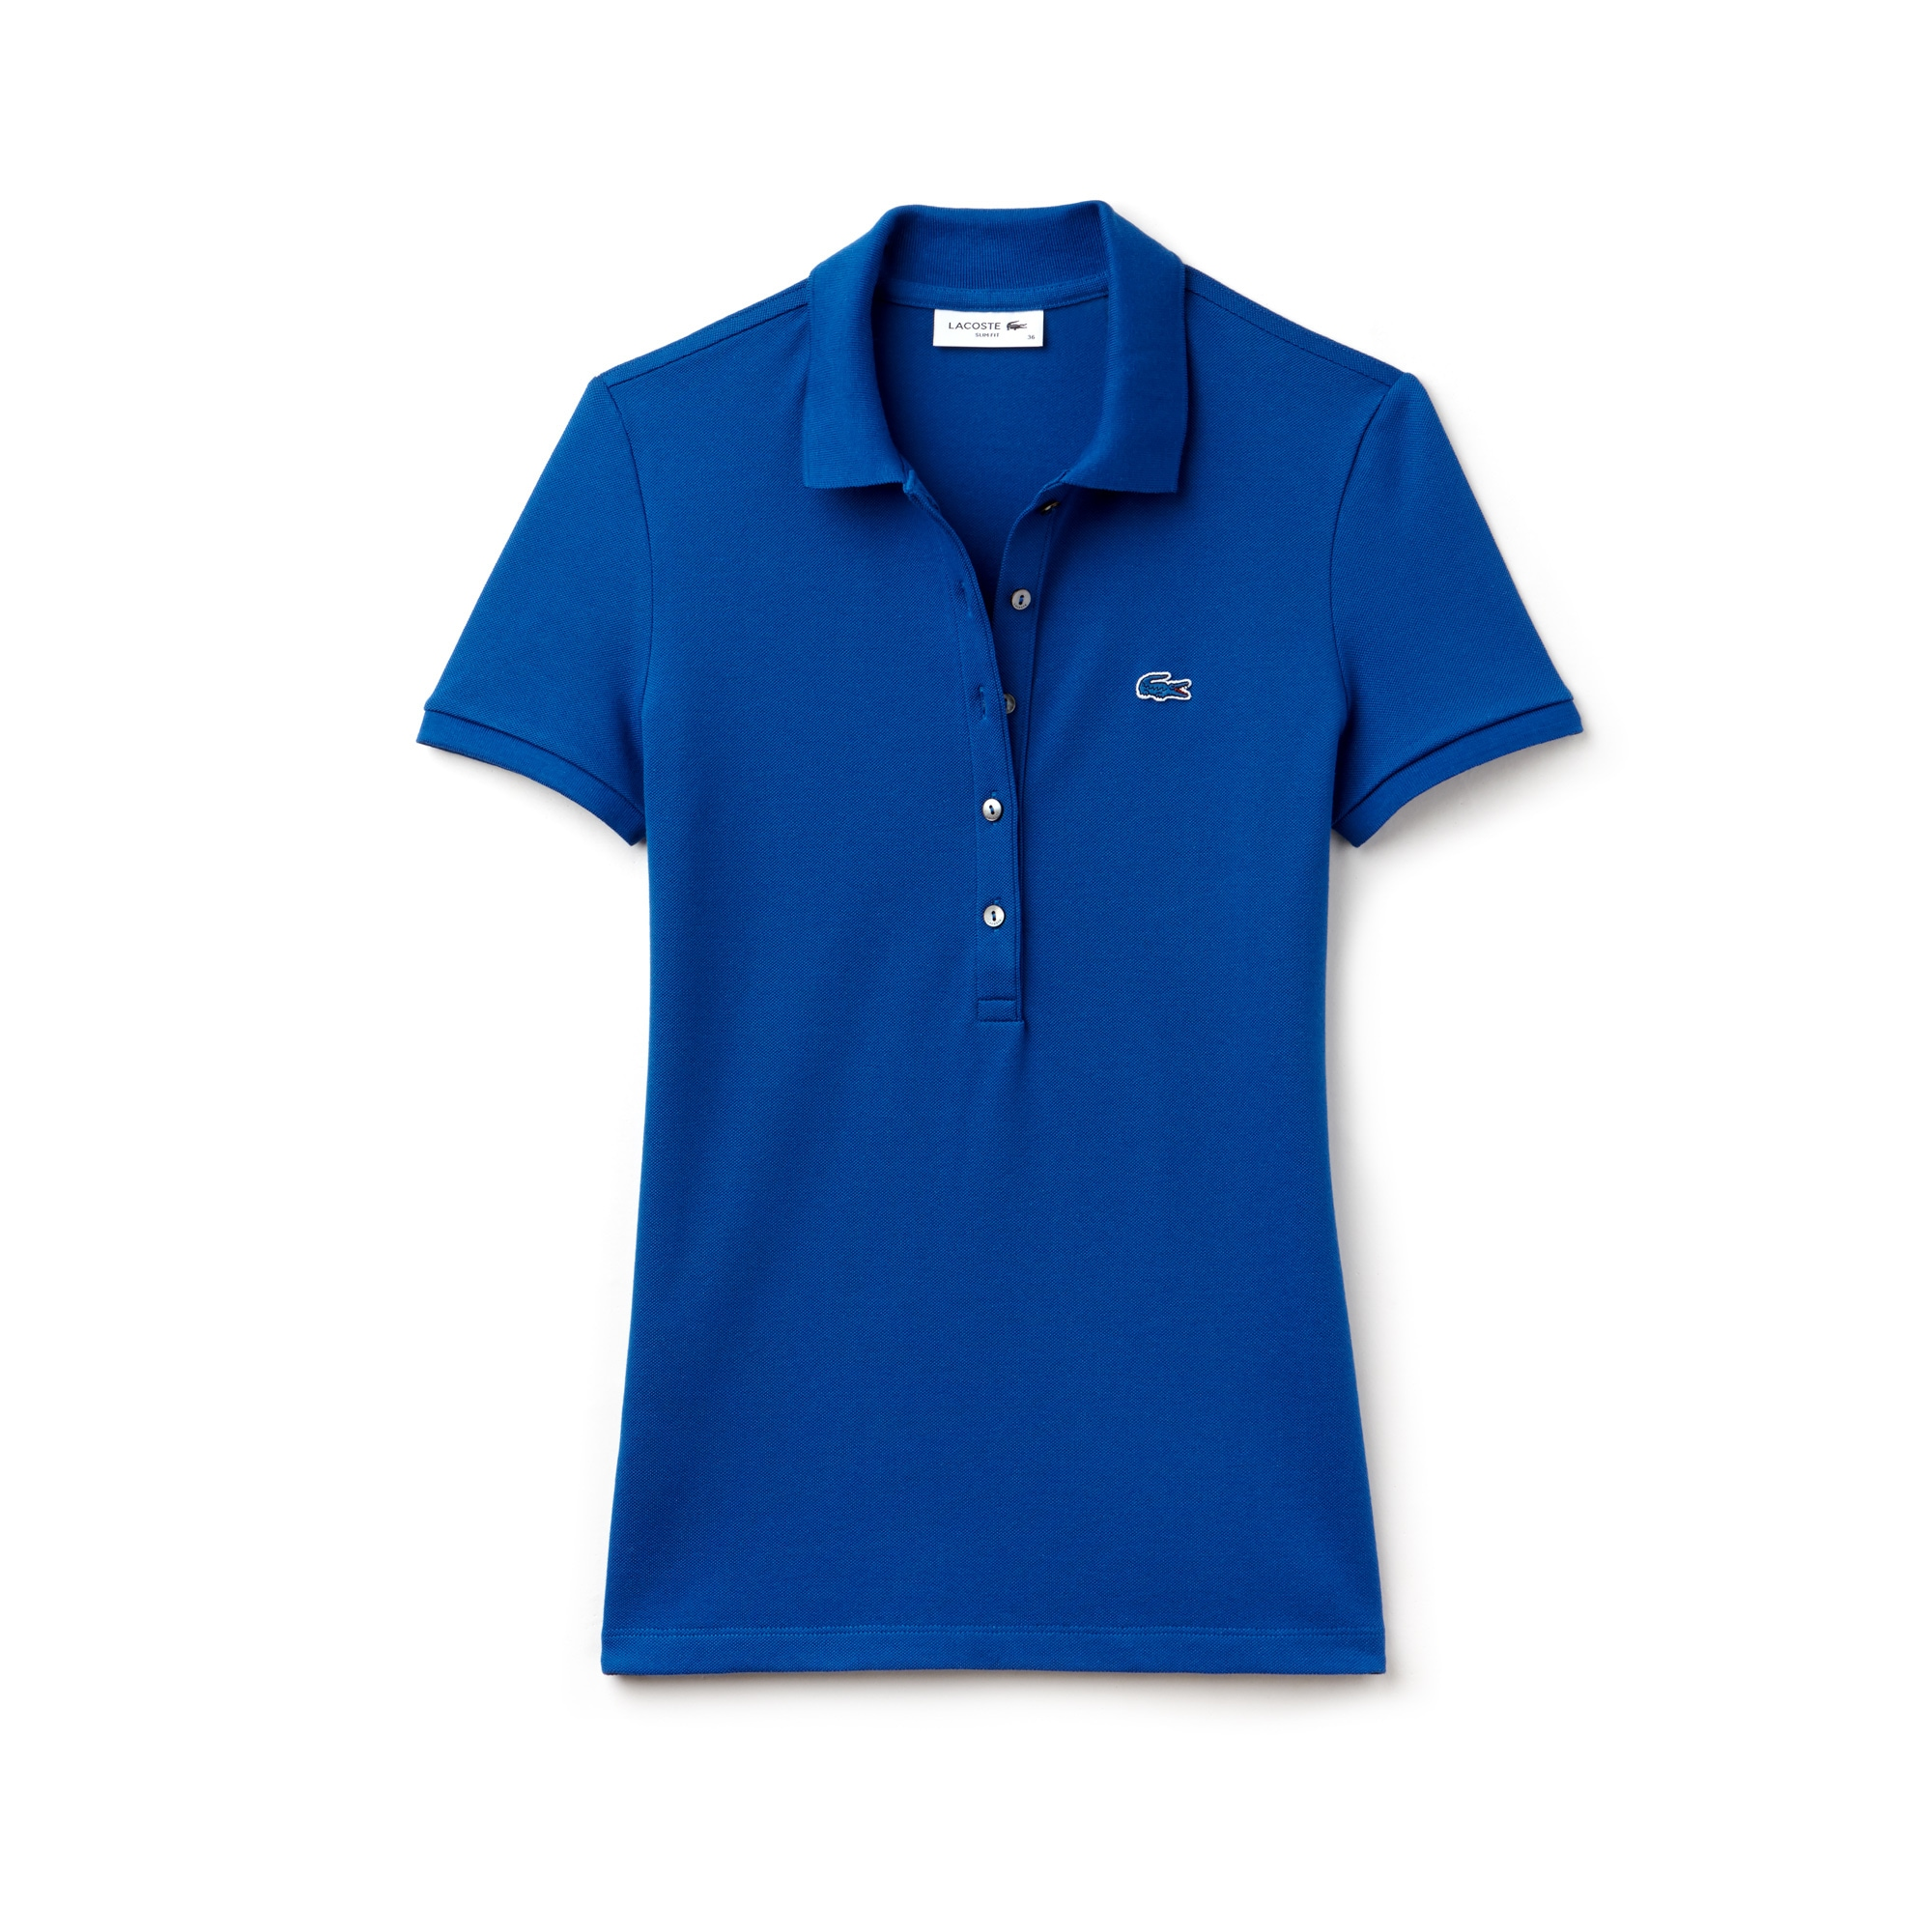 Polo slim fit Lacoste en mini piqué de coton stretch uni